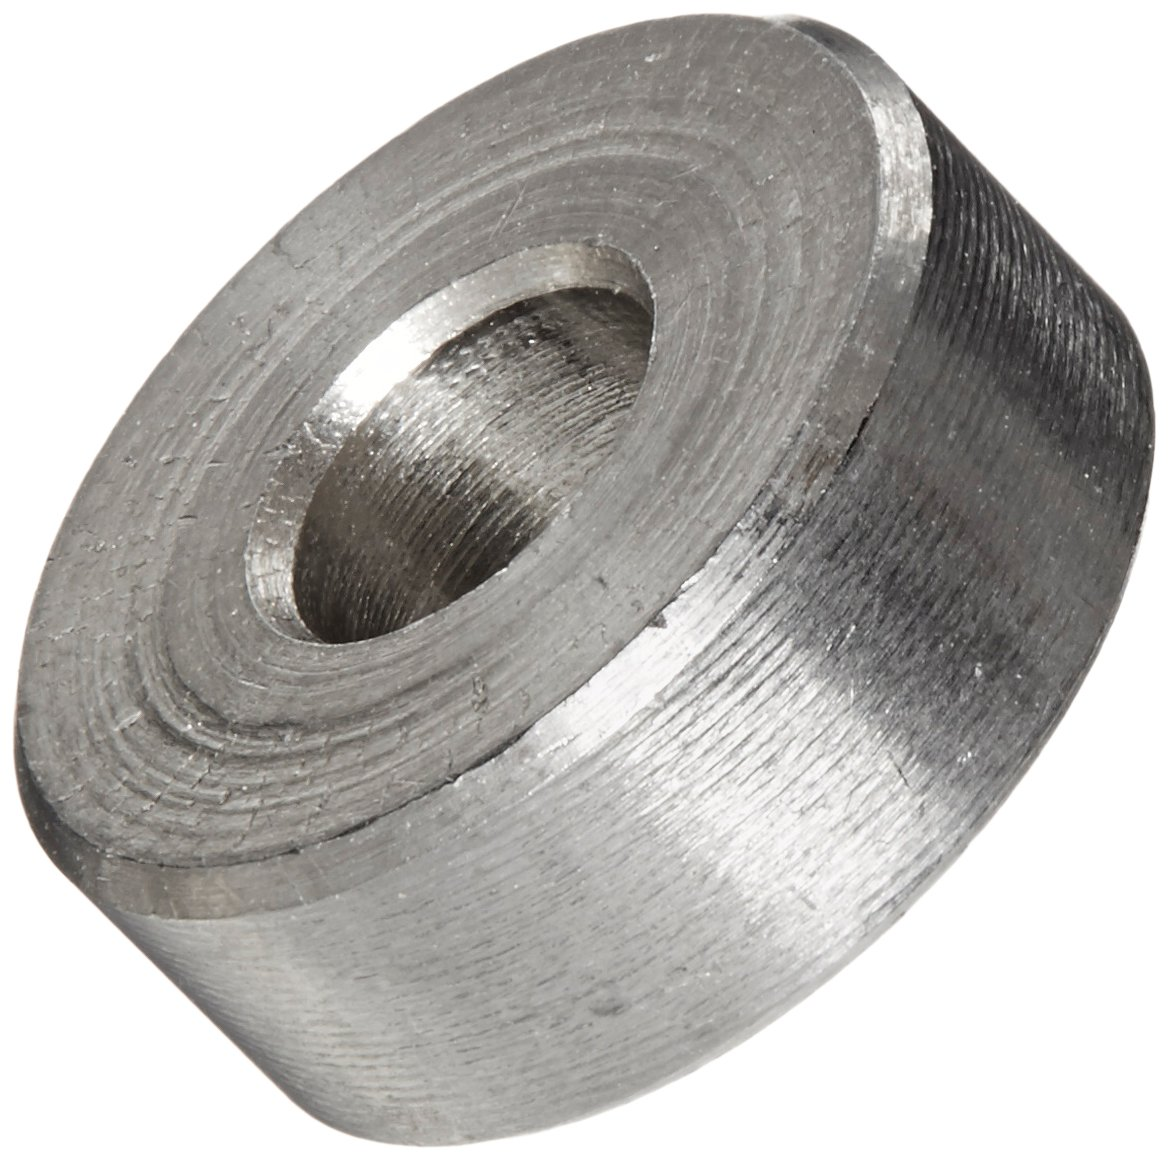 Round Spacer, 18-8 Stainless Steel, Plain Finish, #10 Screw Size, 1/2'' OD, 0.192'' ID, 3/16'' Length (Pack of 5)